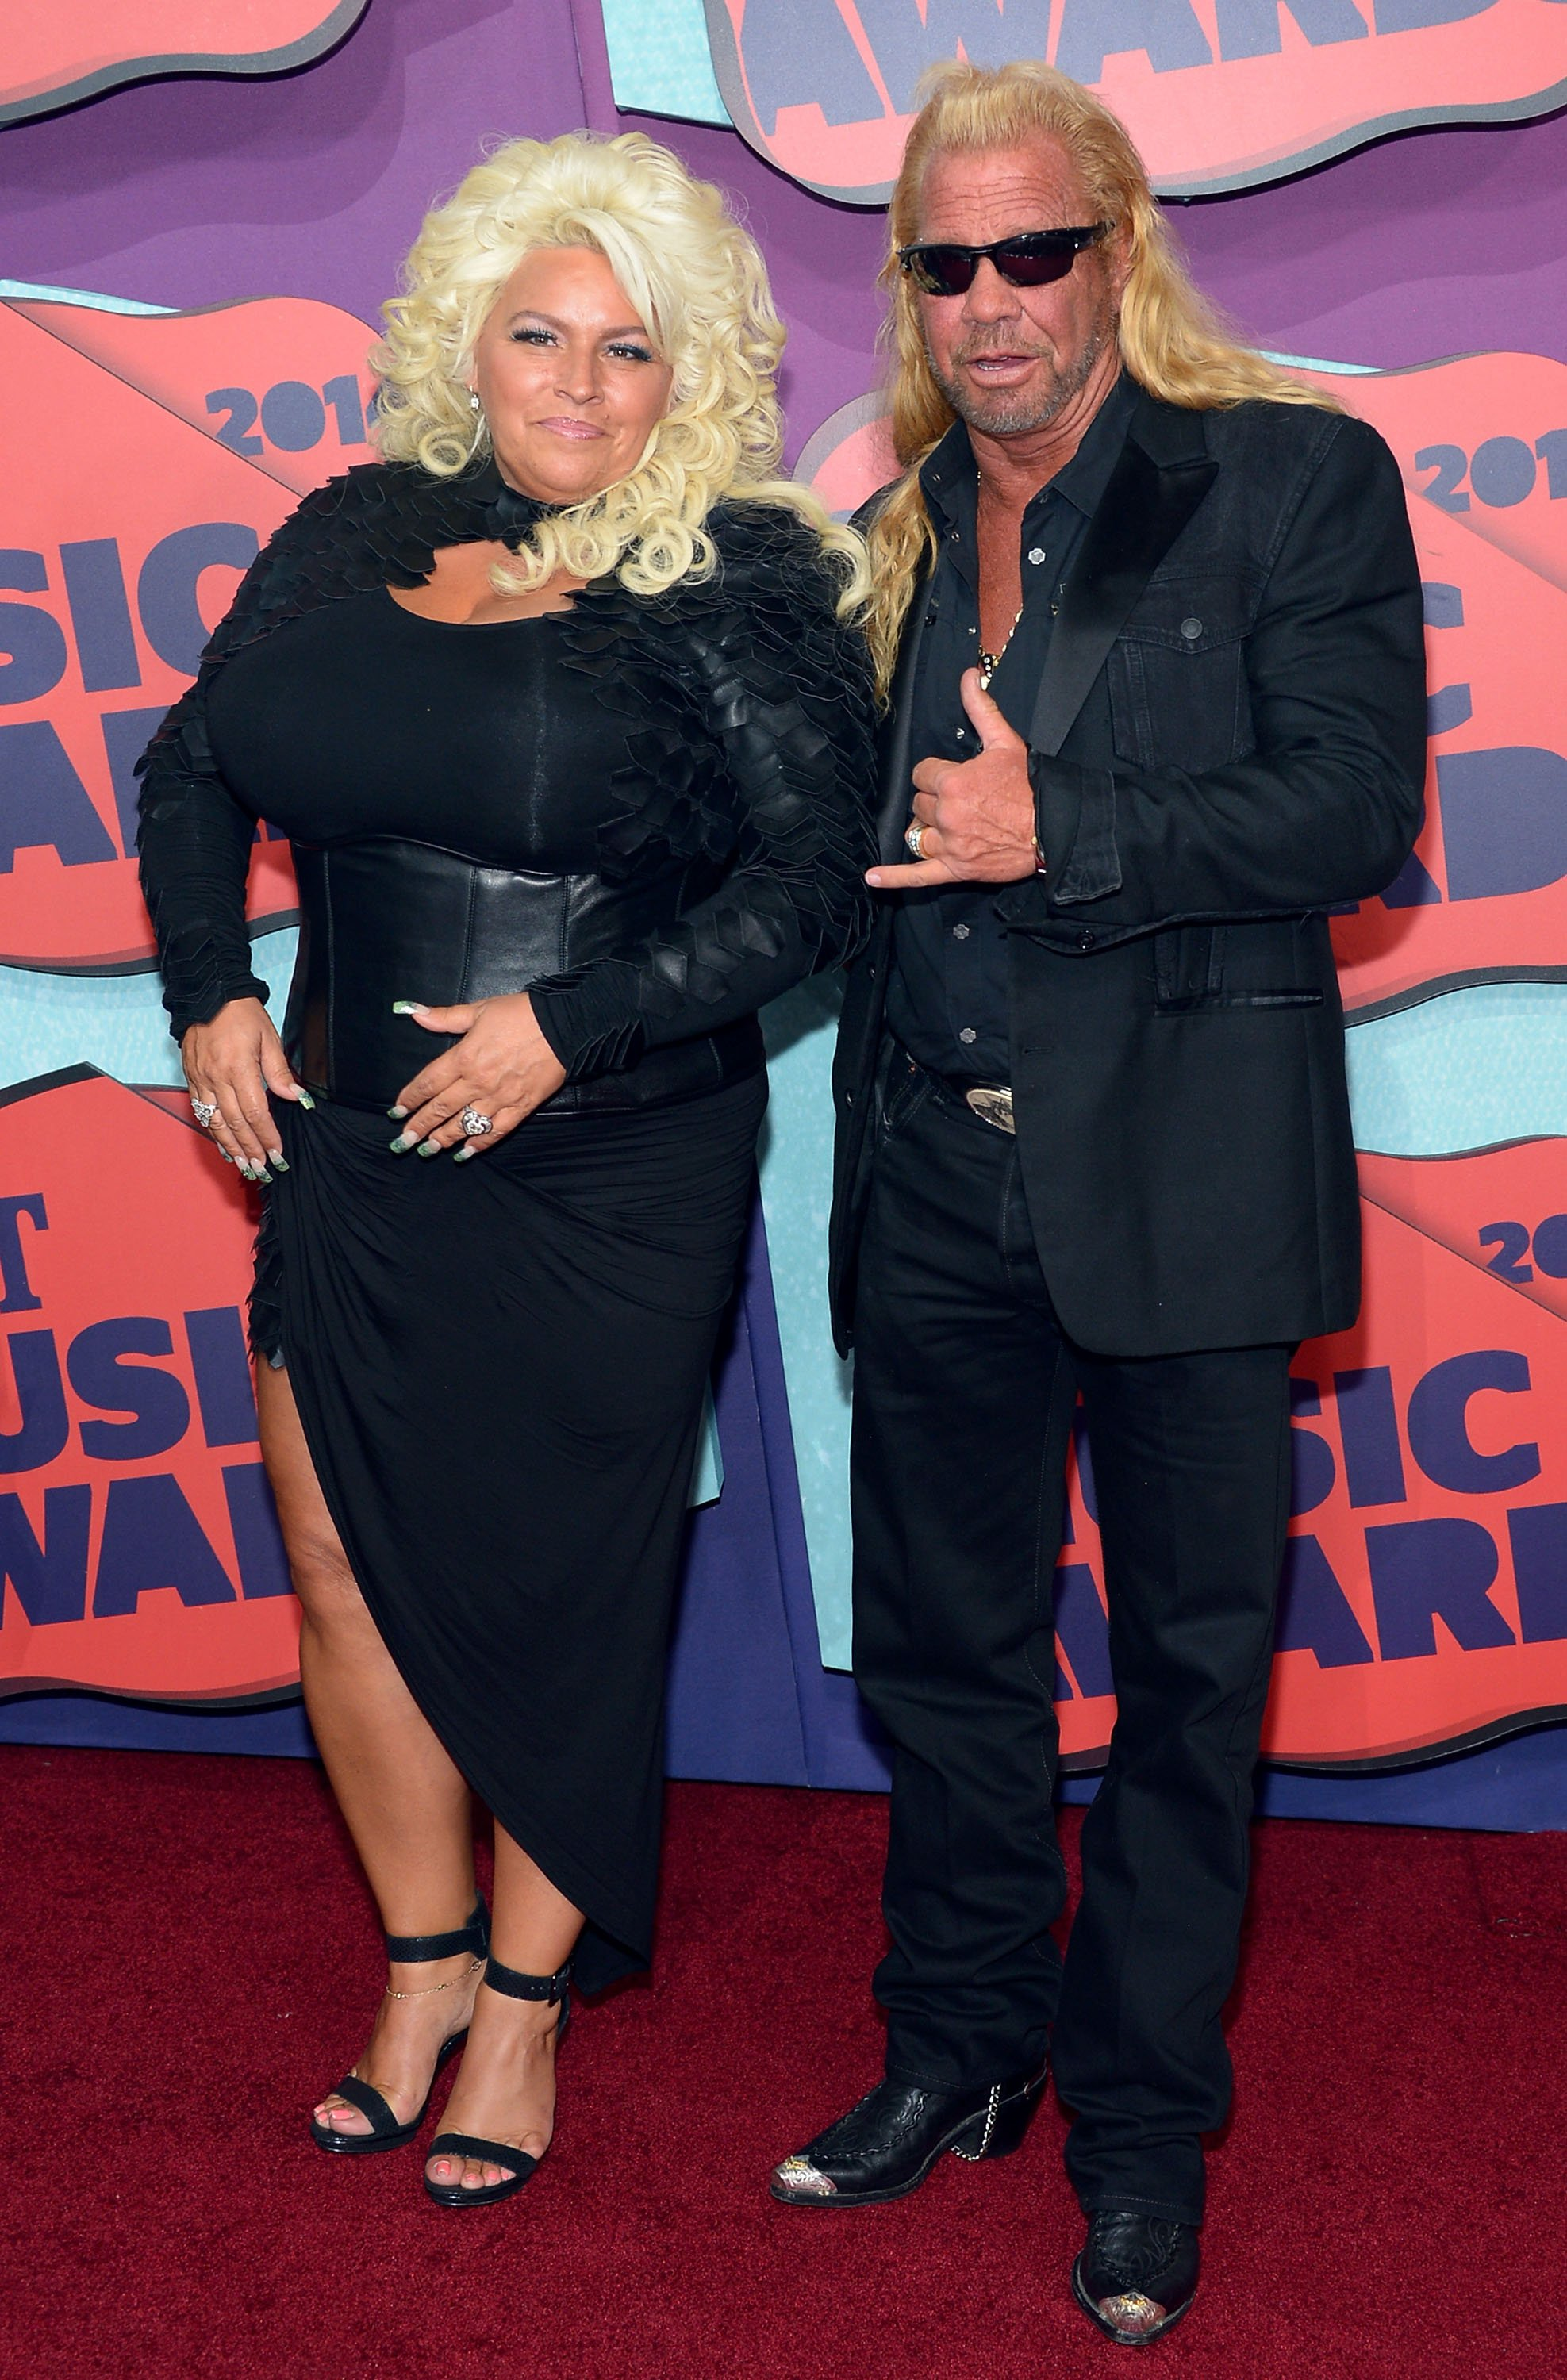 Beth Chapman and Duane Chapman attend the 2014 CMT Music awards at the Bridgestone Arena on June 4, 2014 in Nashville, Tennessee.| Source : Getty Images